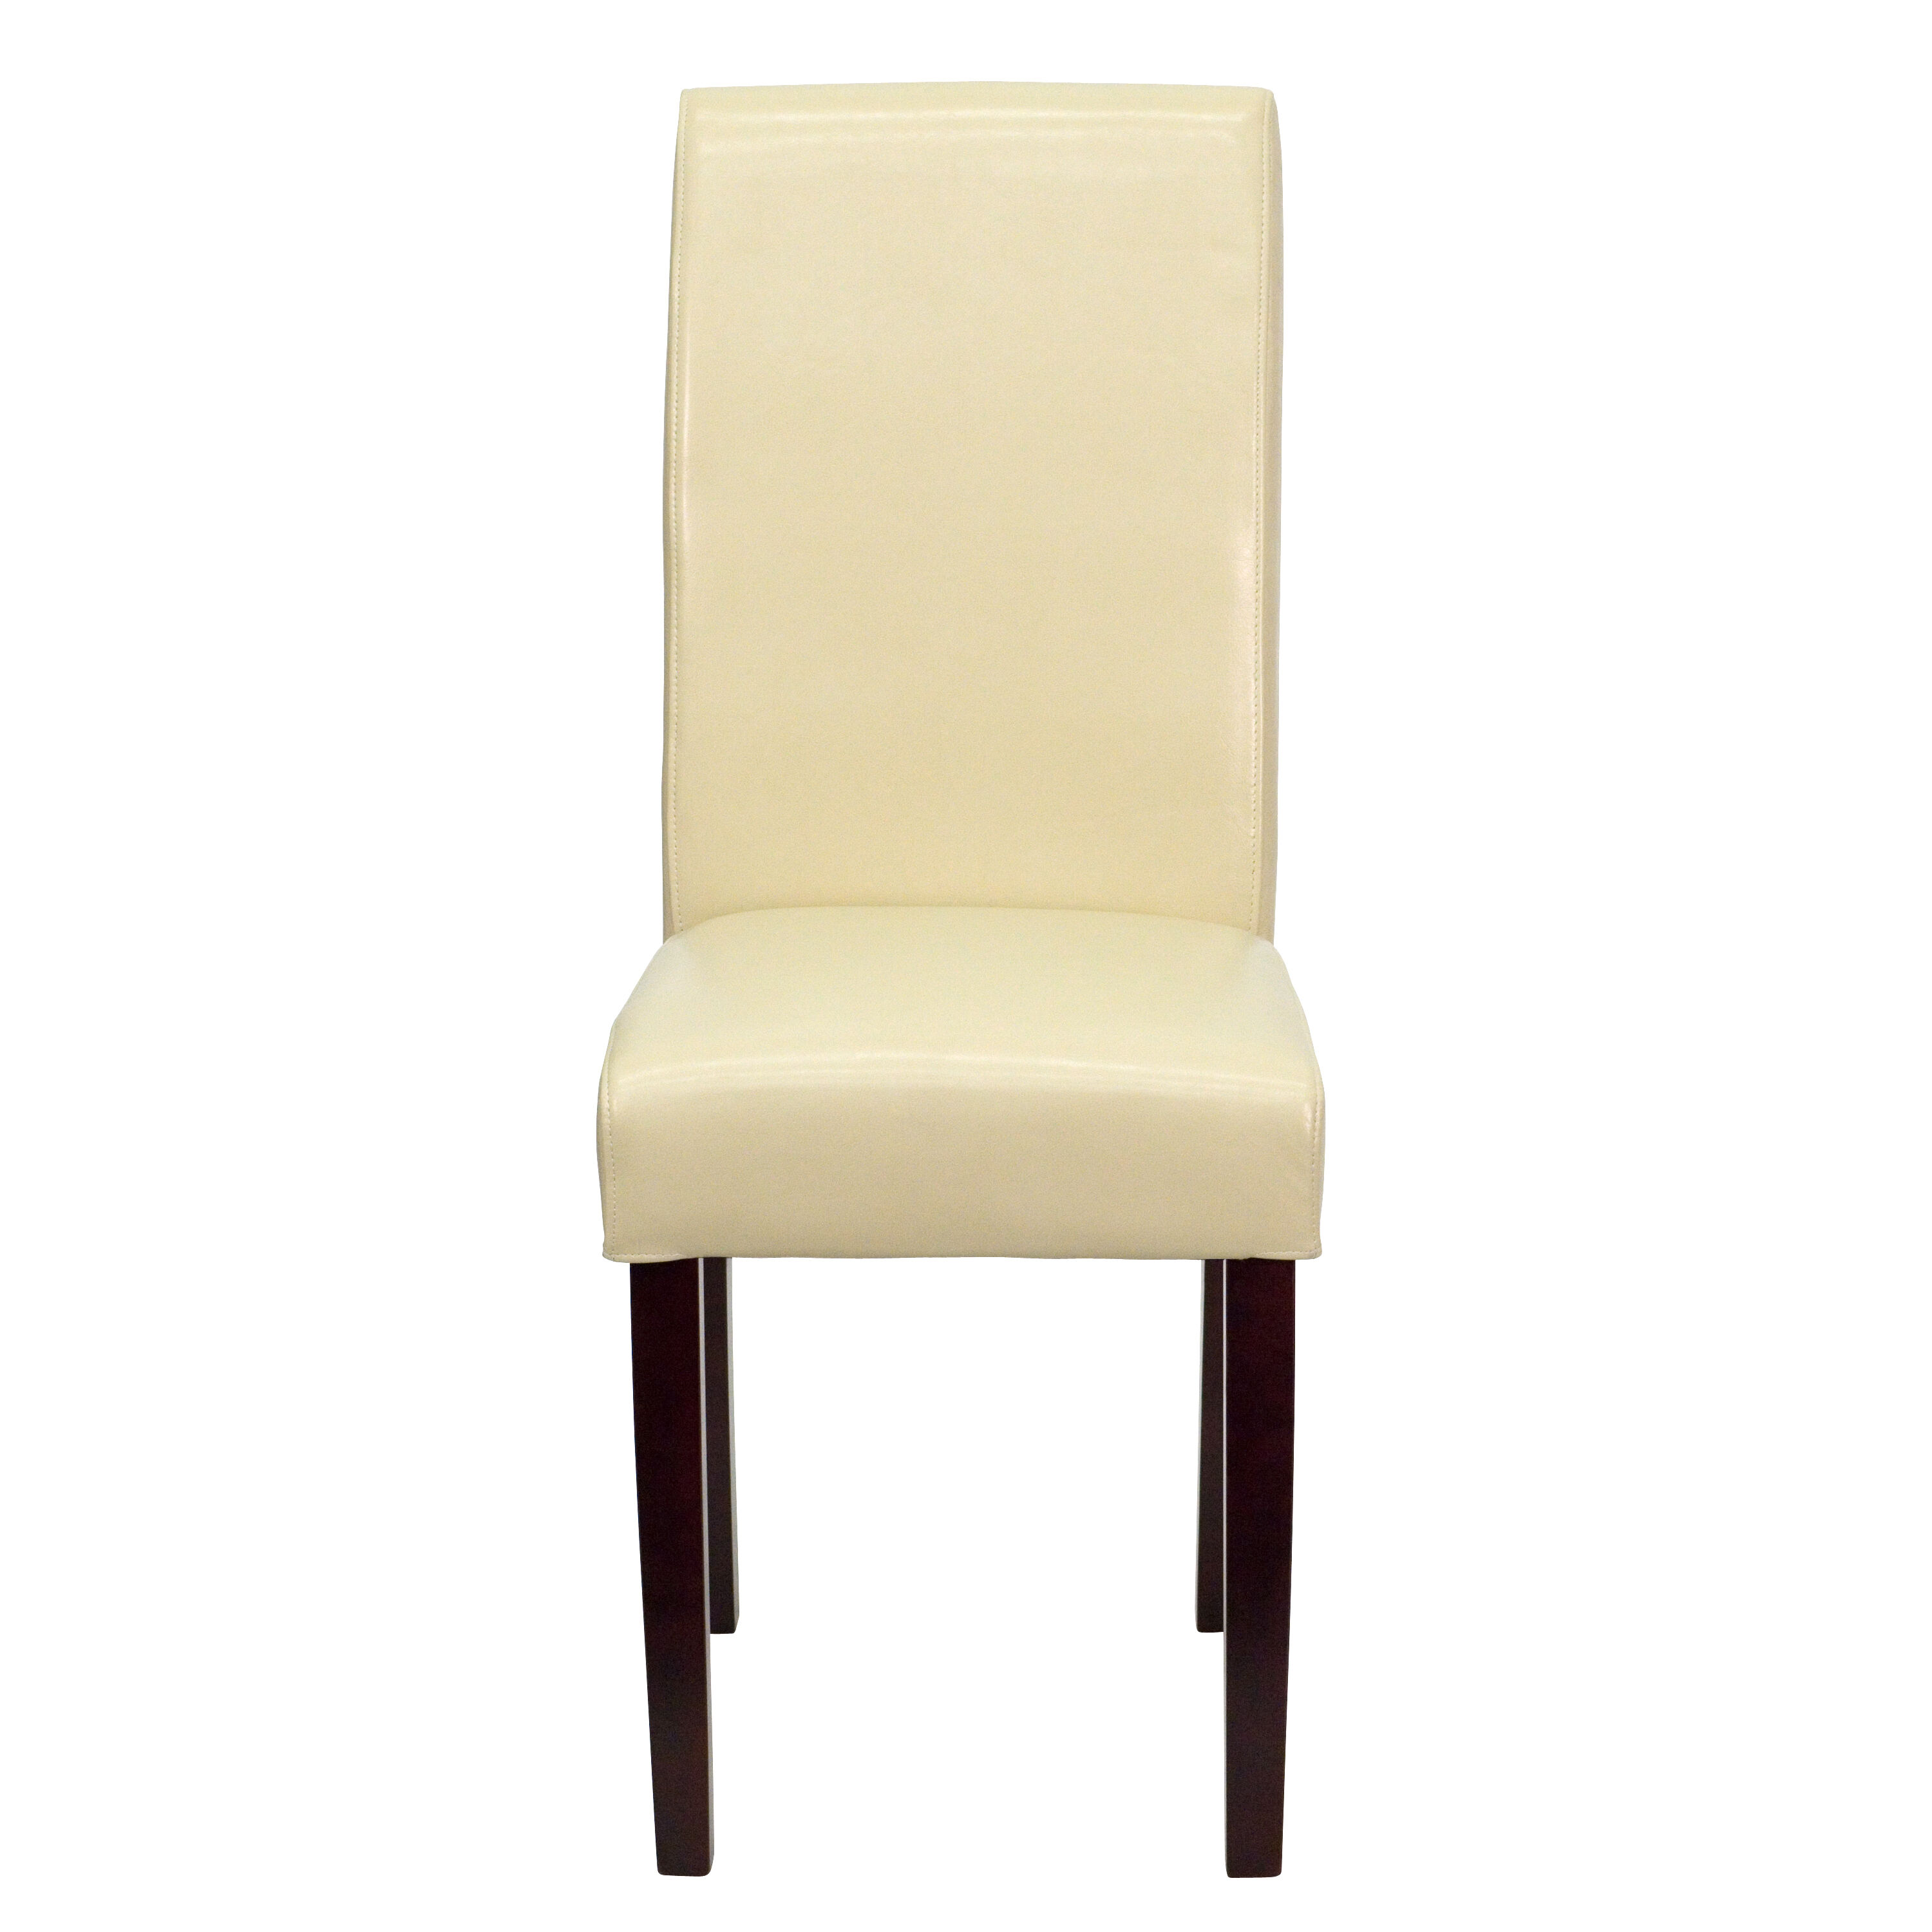 Our Ivory Leather Parsons Chair Is On Sale Now.